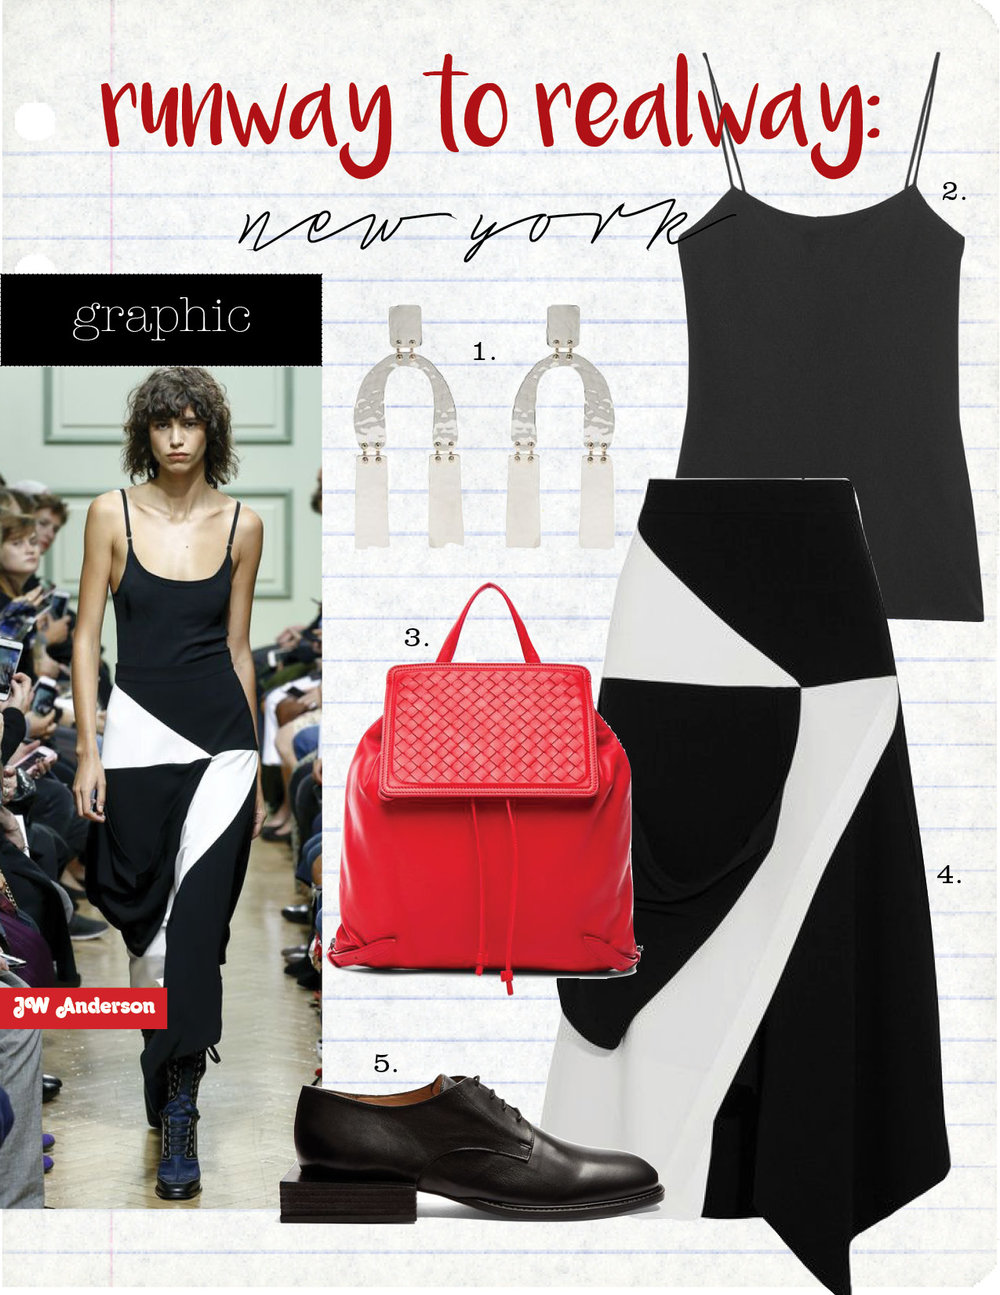 1. proenza schouler abstract-shaped hammered drop earrings, $567,  matchesfashion.com  2. the row biggins matte-satin camisole, $350,  net-a-porter.com  3. bottega veneta woven leather backpack, $2450,  fwrd.com  4. j.w.anderson asymmetric wrap-effect crepe skirt, $995,  net-a-porter.com  5. jacquemus sculptured-heel leather brogues, $510,  matchesfashion.com